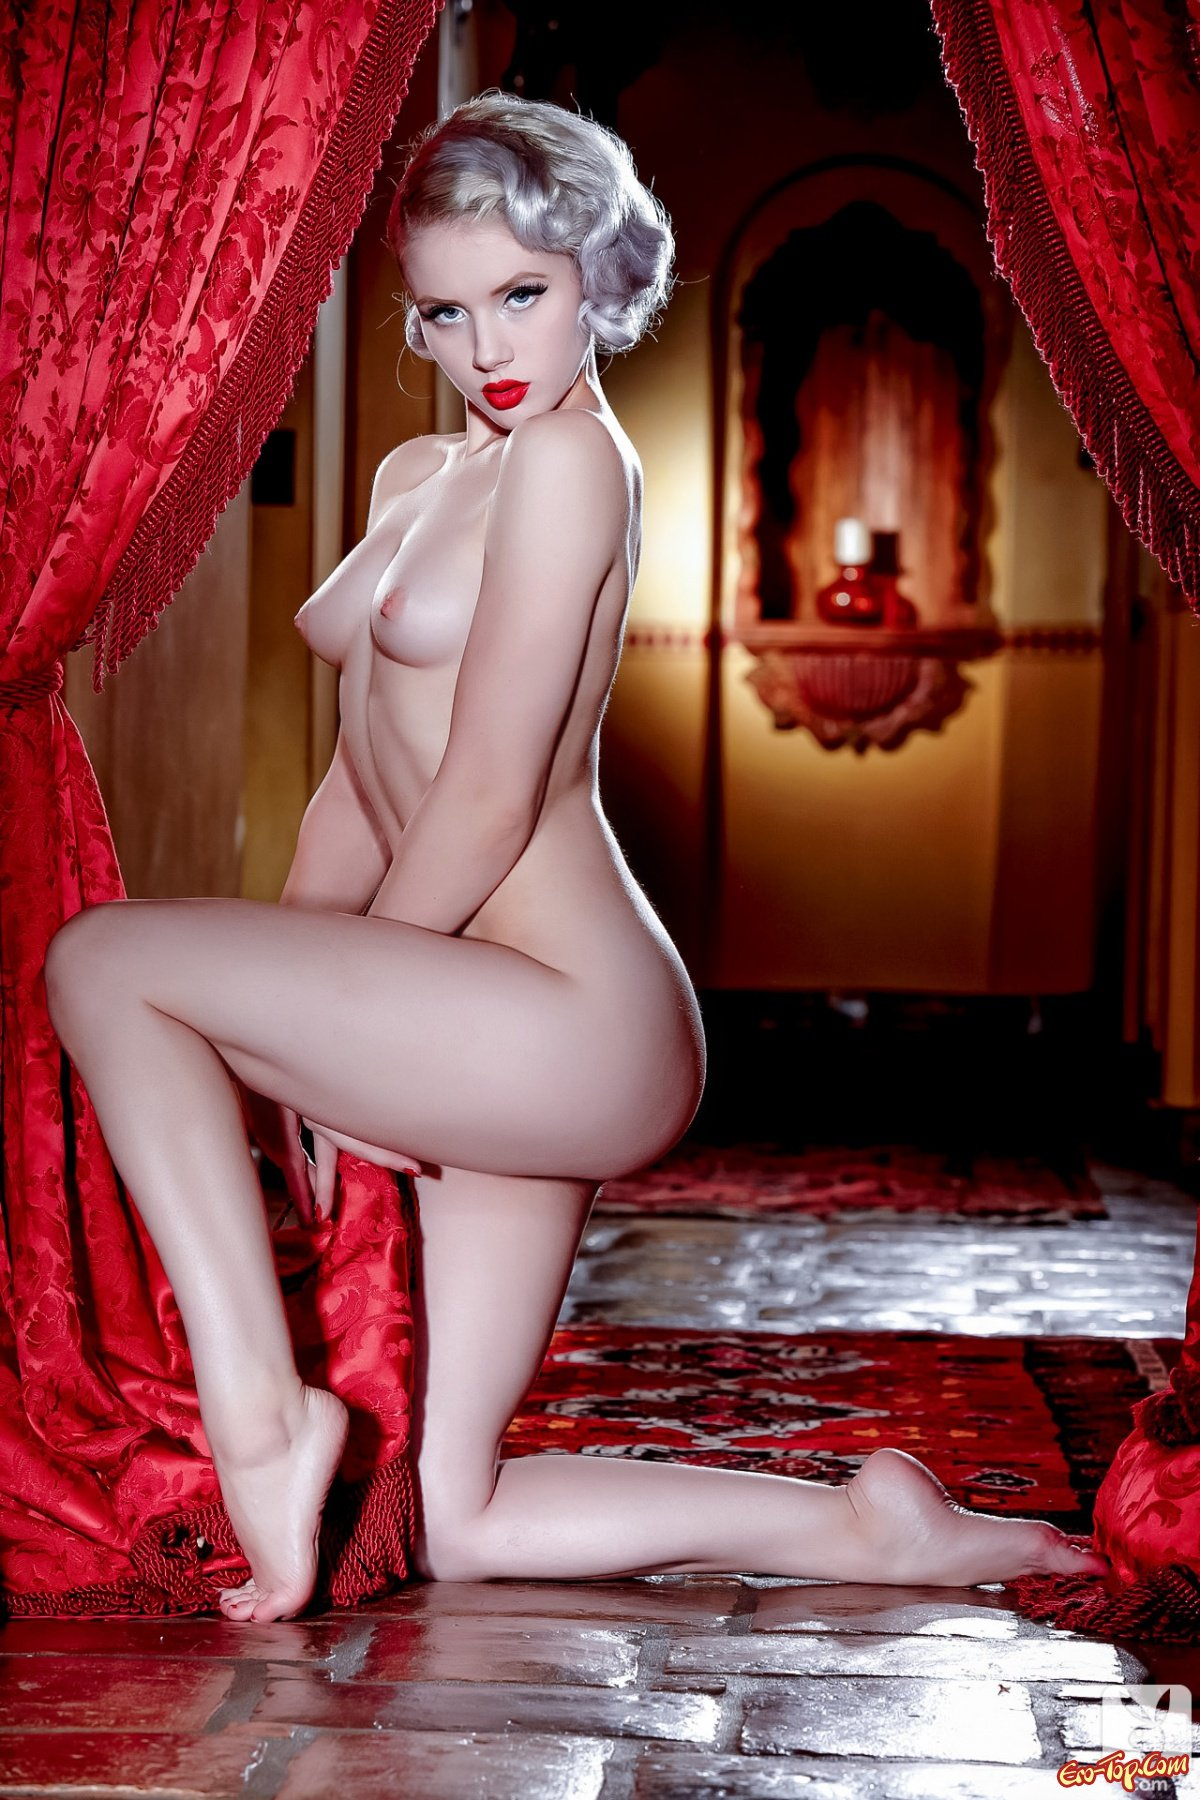 Free video of a naked glamour shoot — 1